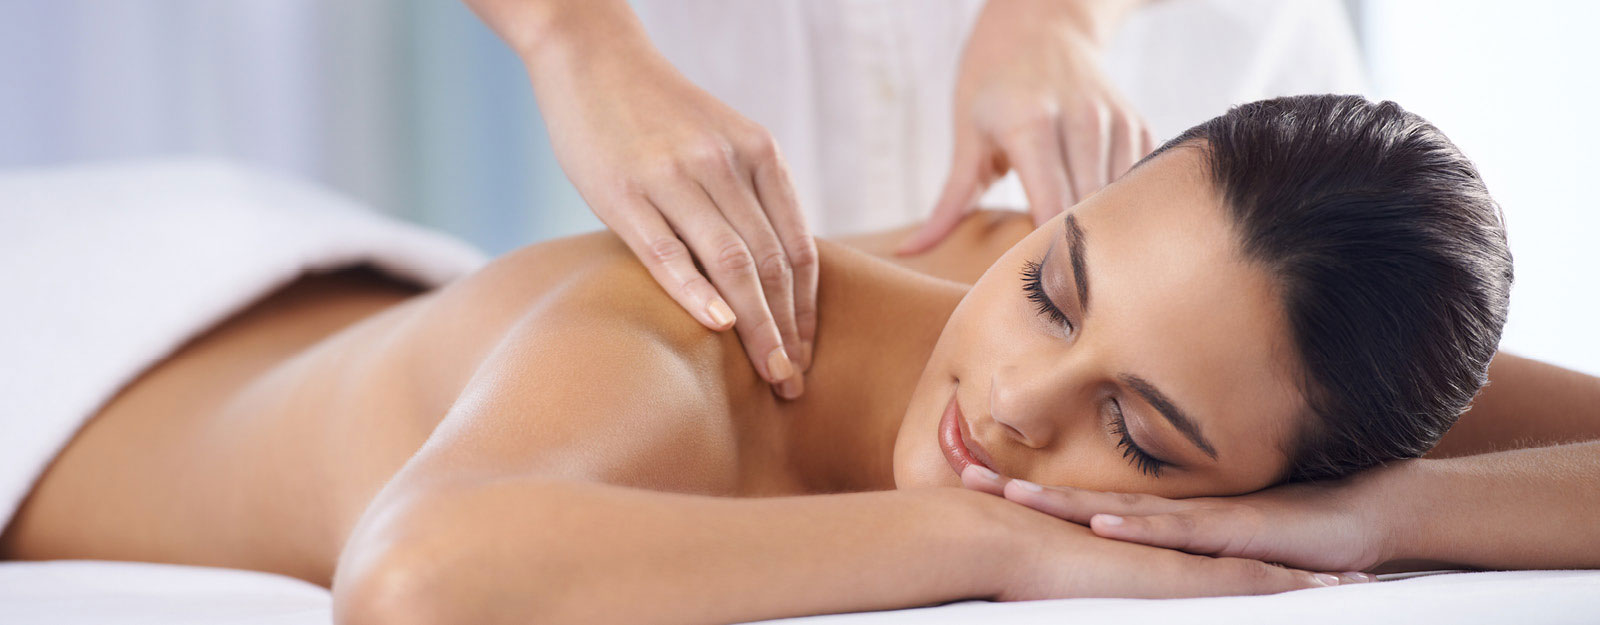 Full Spa Packages for Skin and Body Massage | ClubSport Health and Fitness  Gym